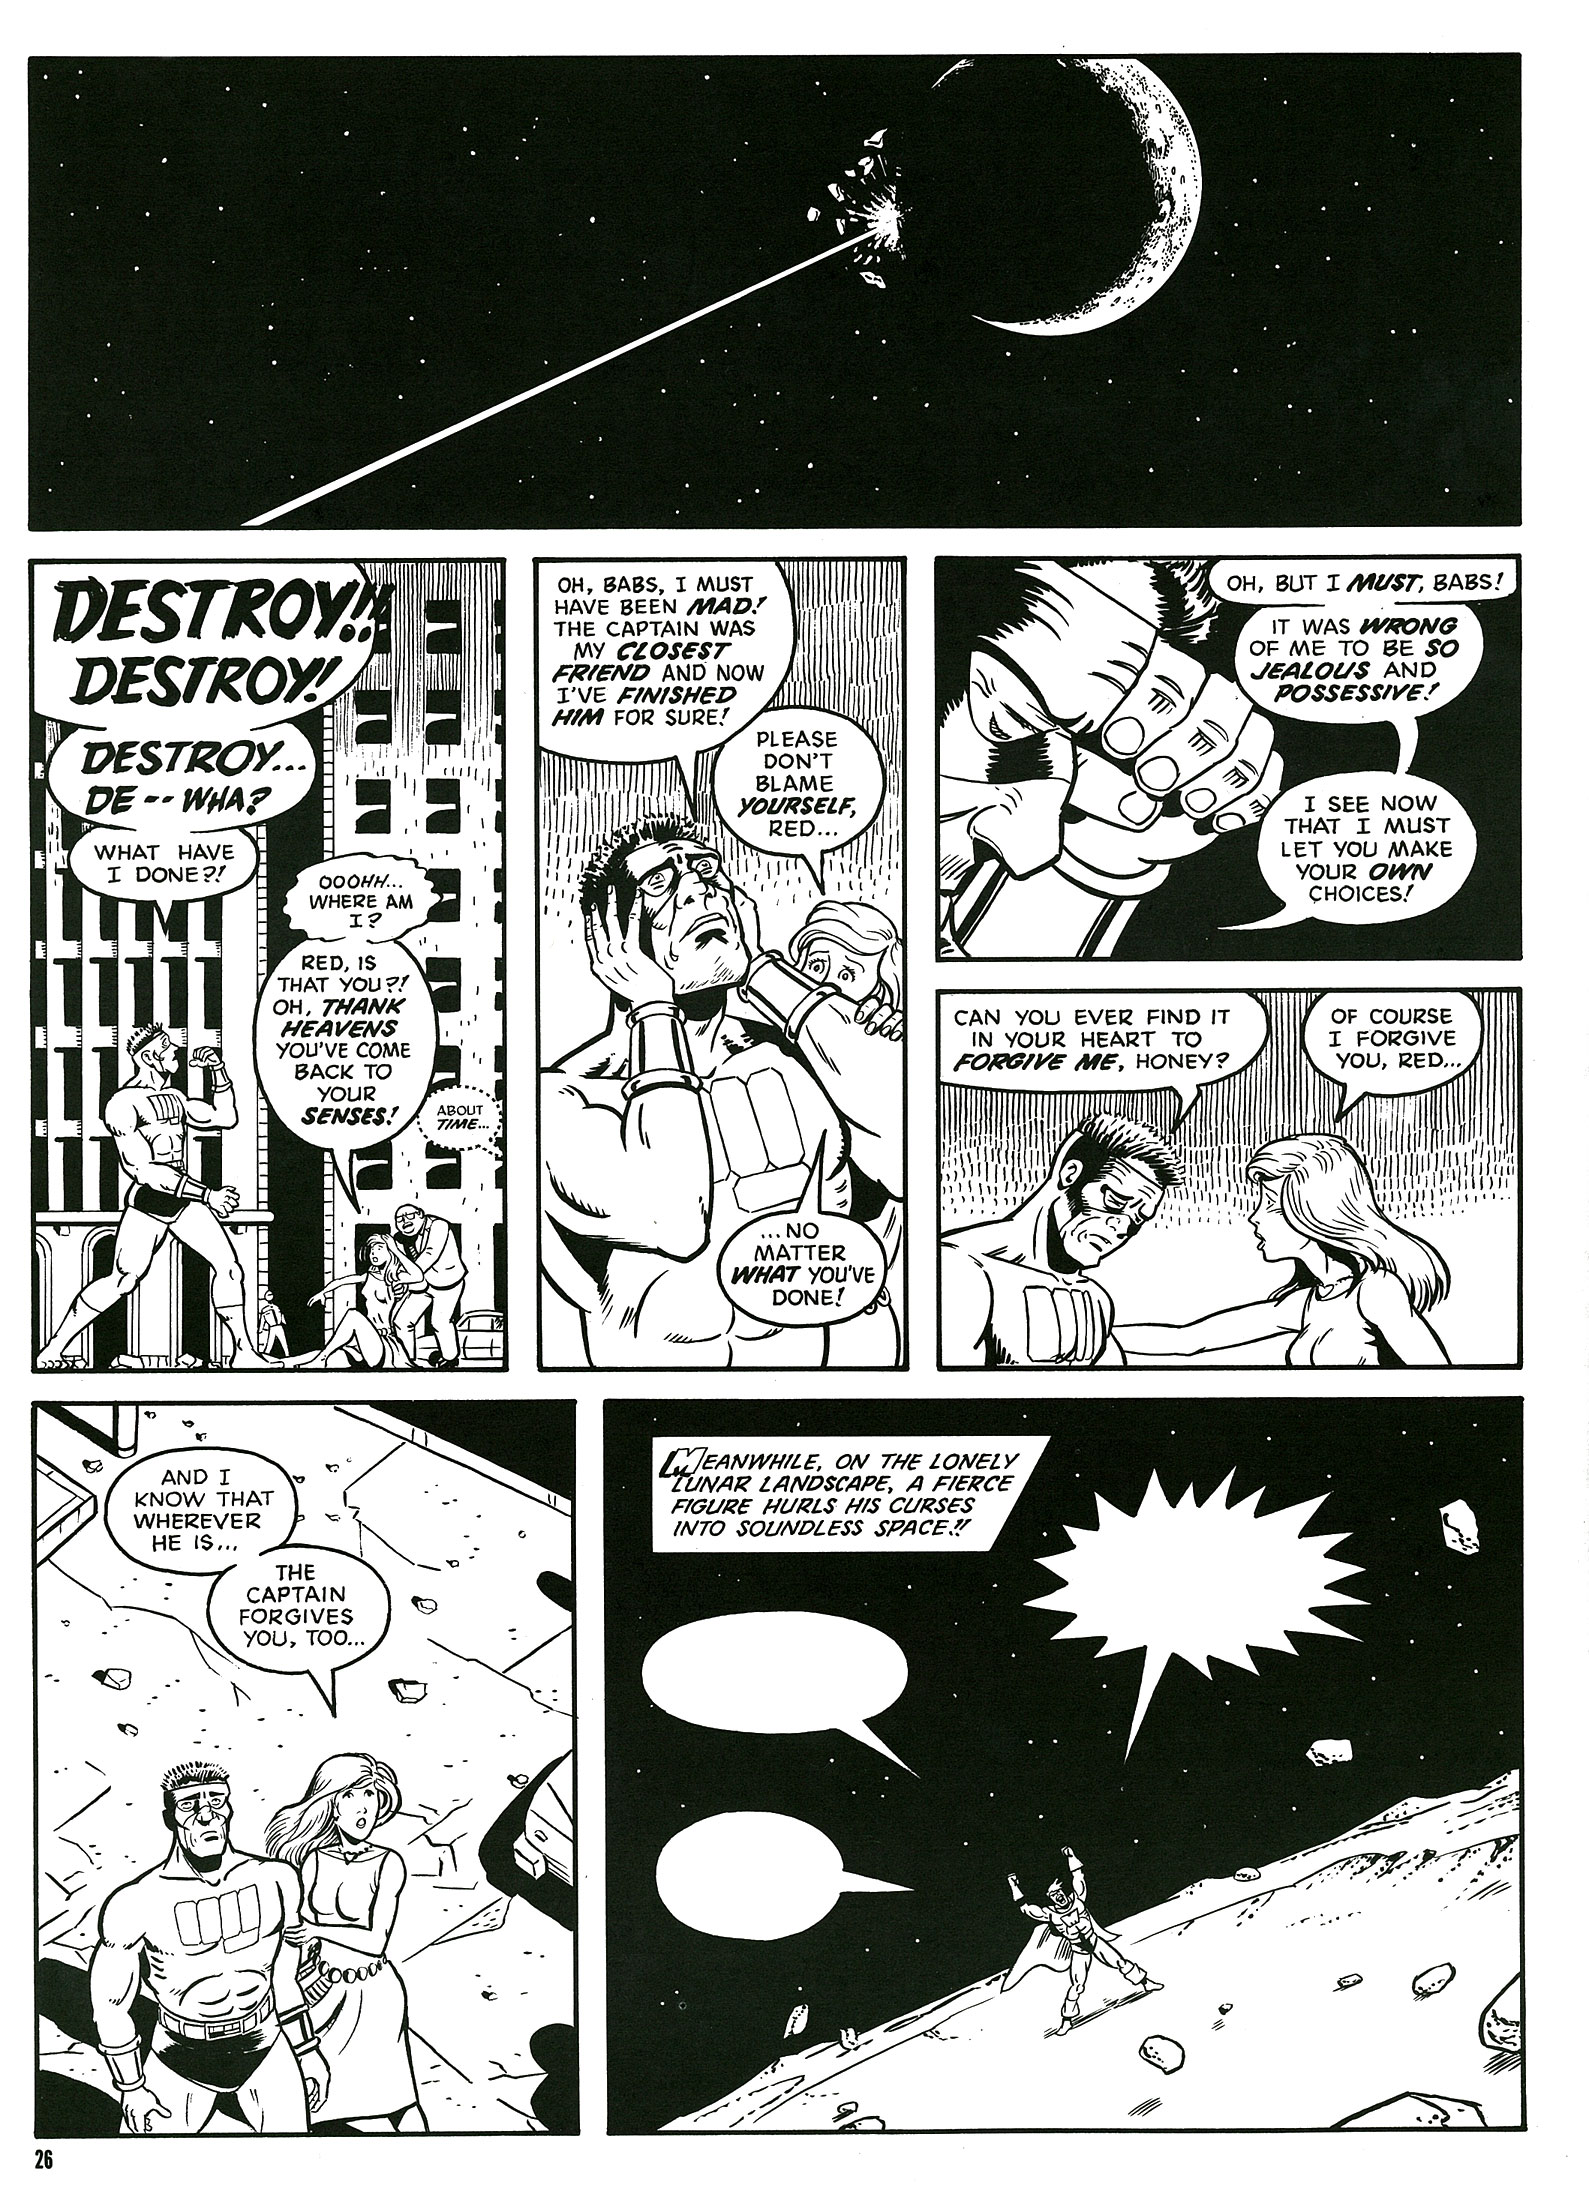 Read online Destroy!! comic -  Issue # Full - 28